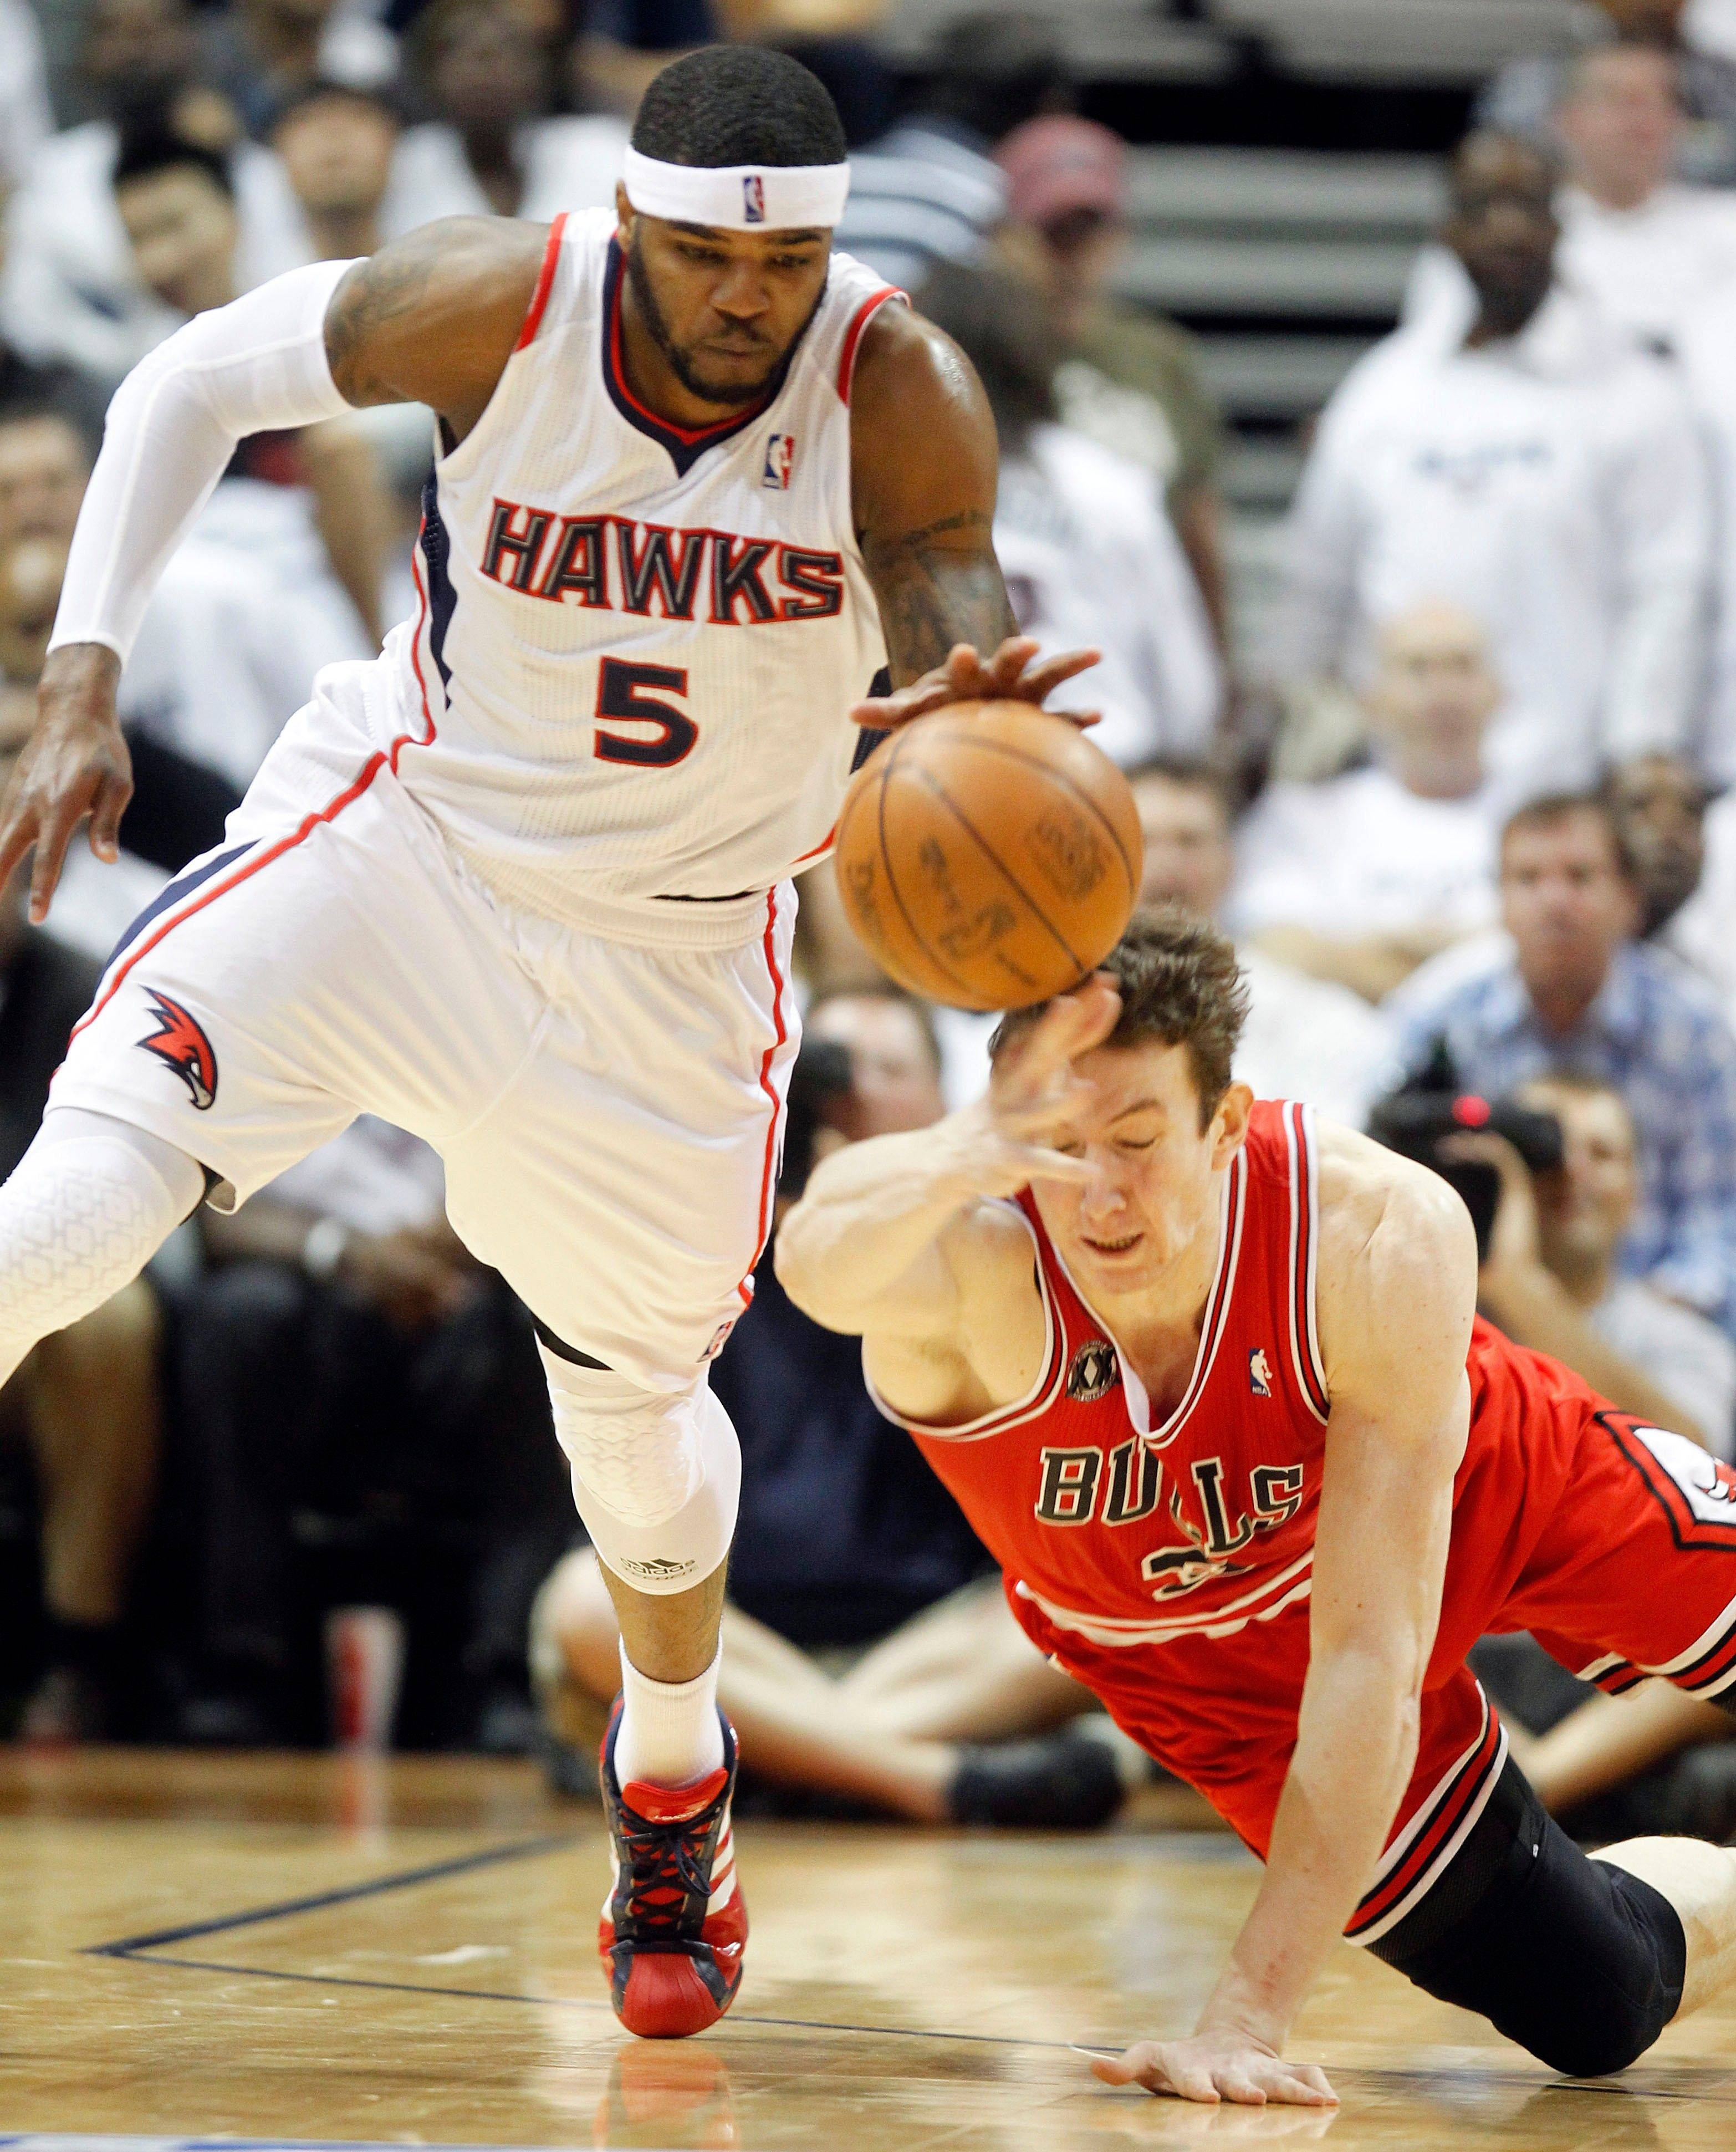 Hawks forward Josh Smith moves the ball up court as Bulls center Omer Asik falls to the court in the second quarter of Game 6 in Atlanta.